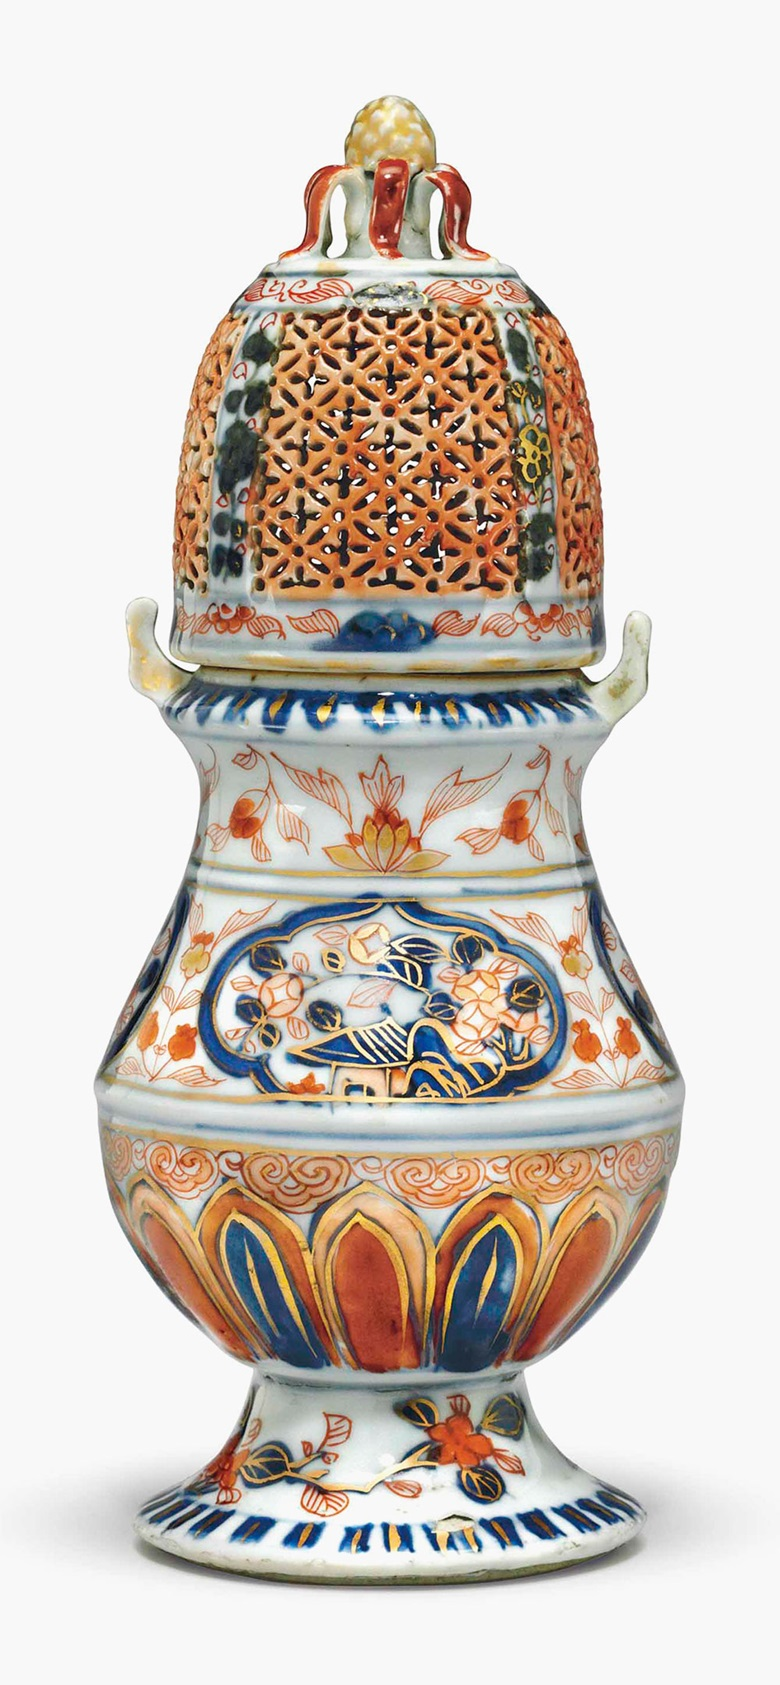 A rare Chinese Imari sugar caster and cover. Circa 1720. 8¼ in (20.3 cm) high, overall. Estimate $10,000-15,000. This lot is offered in Chinese Export Art on 18 January 2017 at Christie's in New York, Rockefeller Plaza